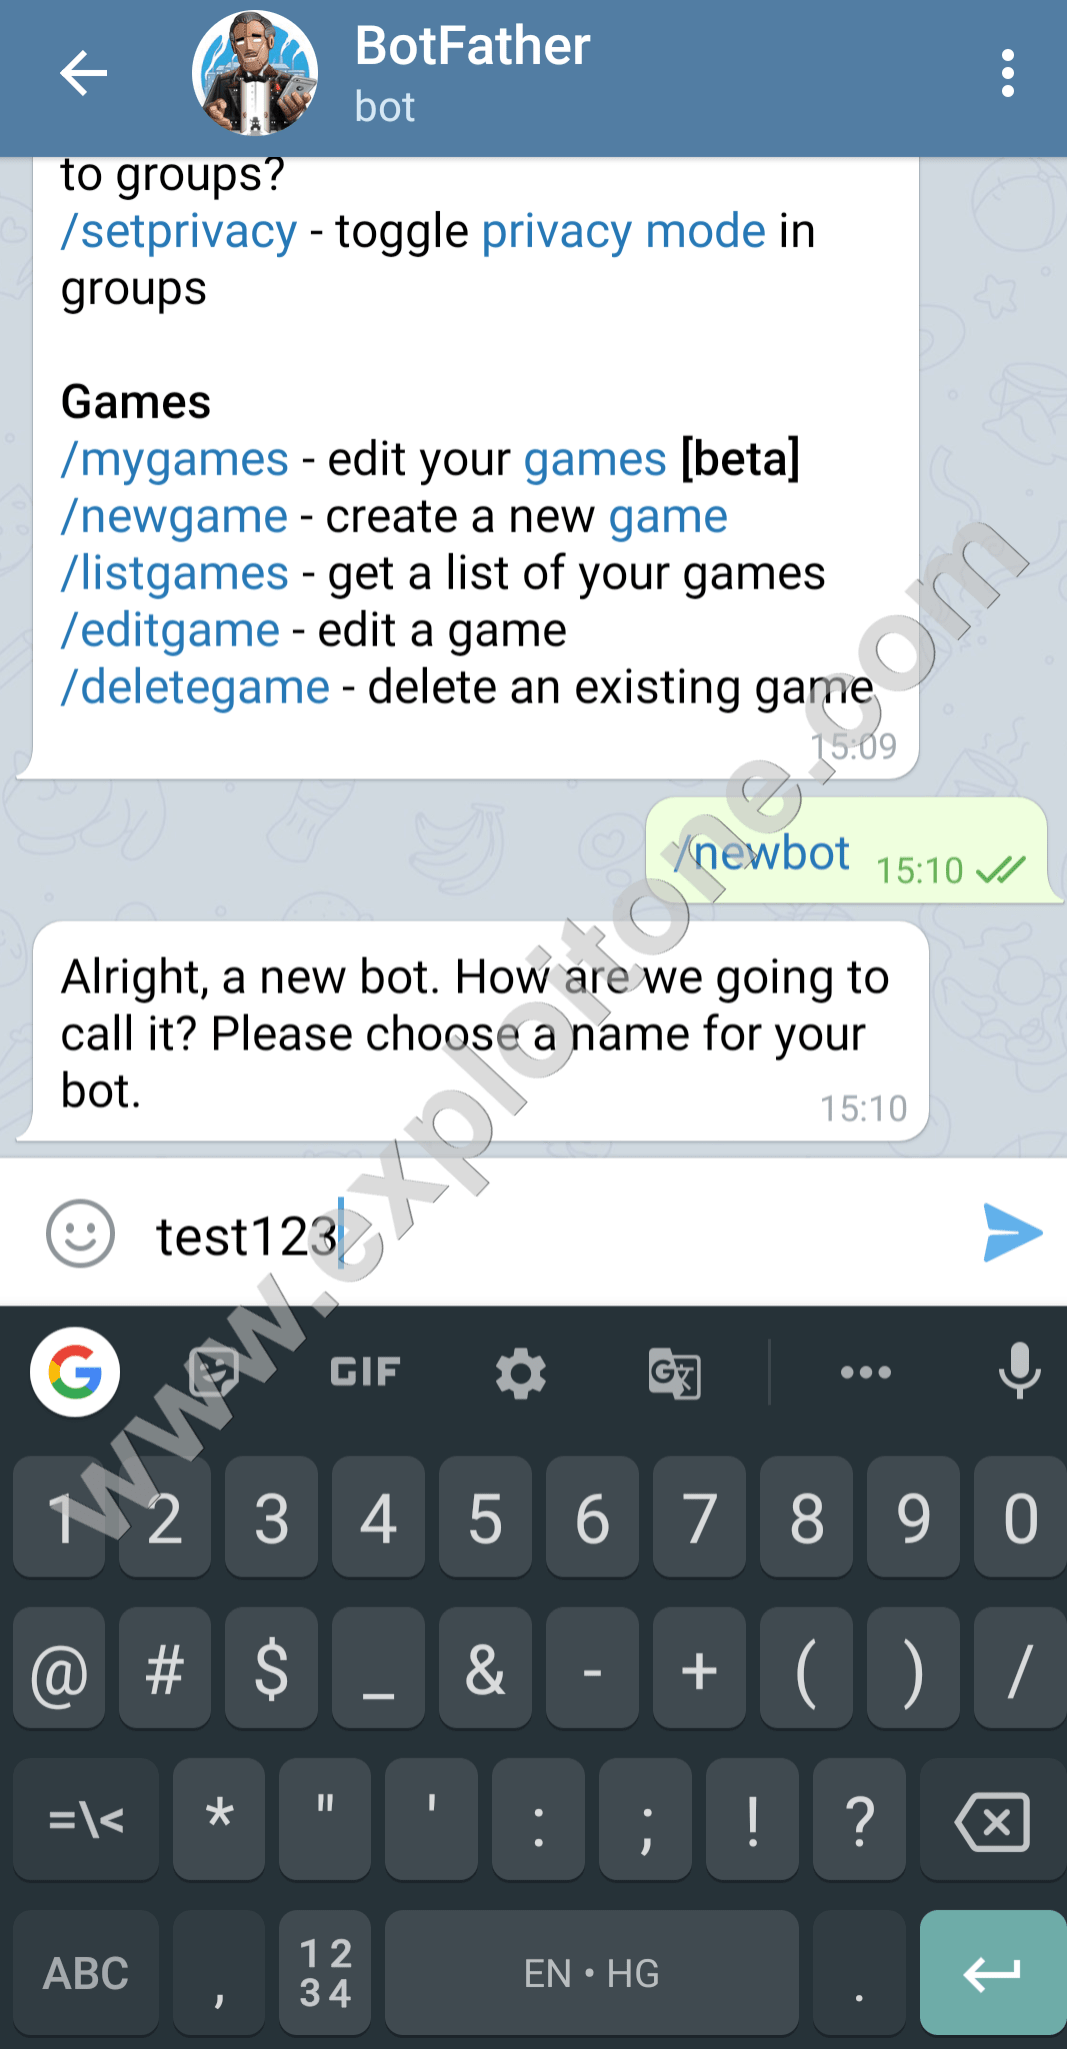 choose a name for your bot